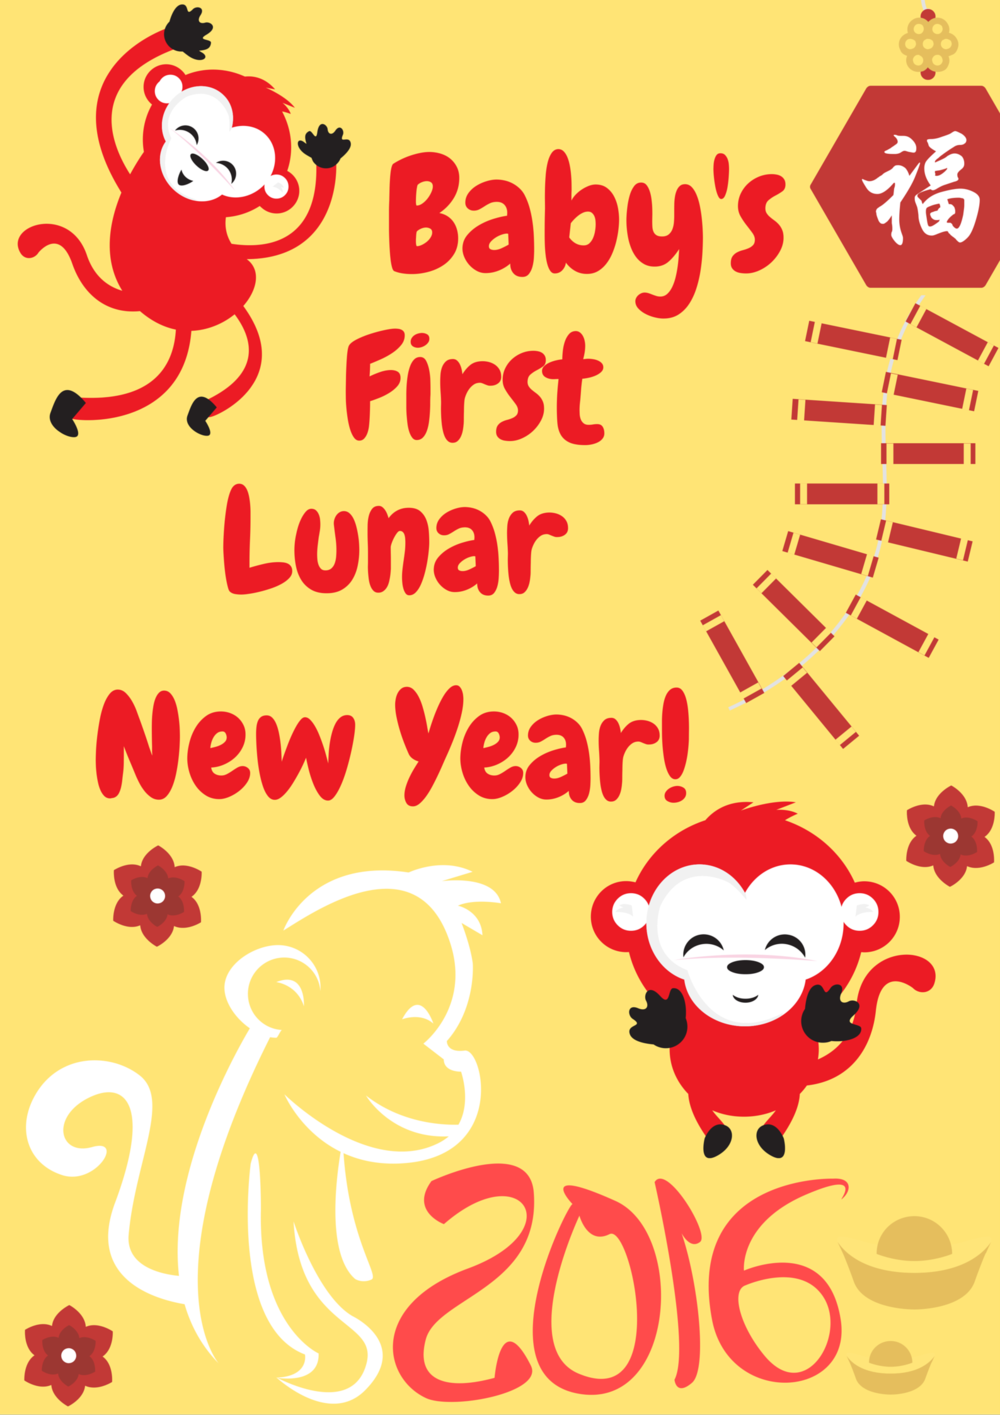 Baby's First Lunar New Year!